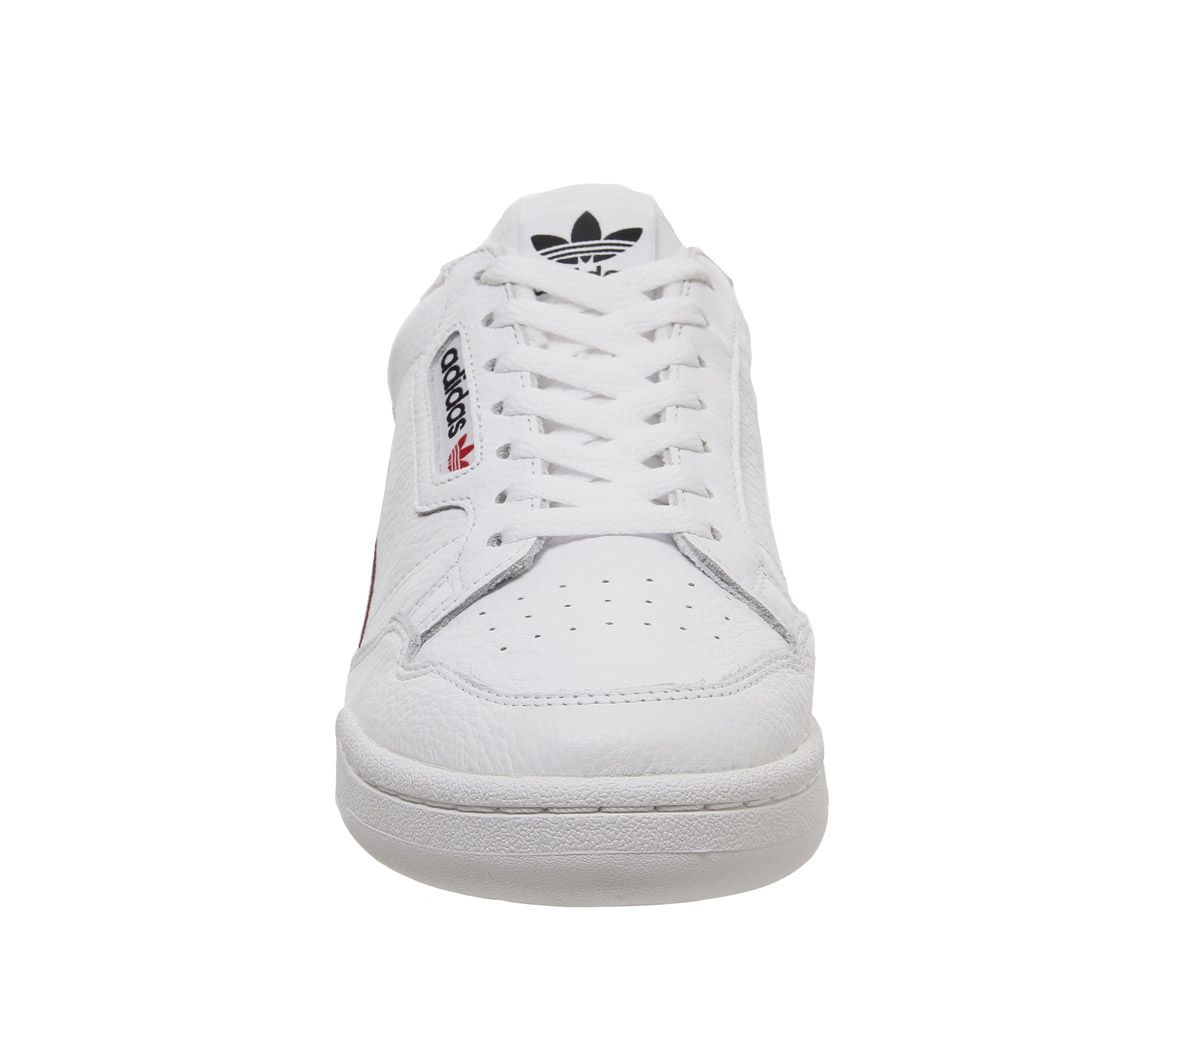 Adidas-80S-Continental-Trainers-White-White-Scarlet-Navy-Trainers-Shoes thumbnail 3